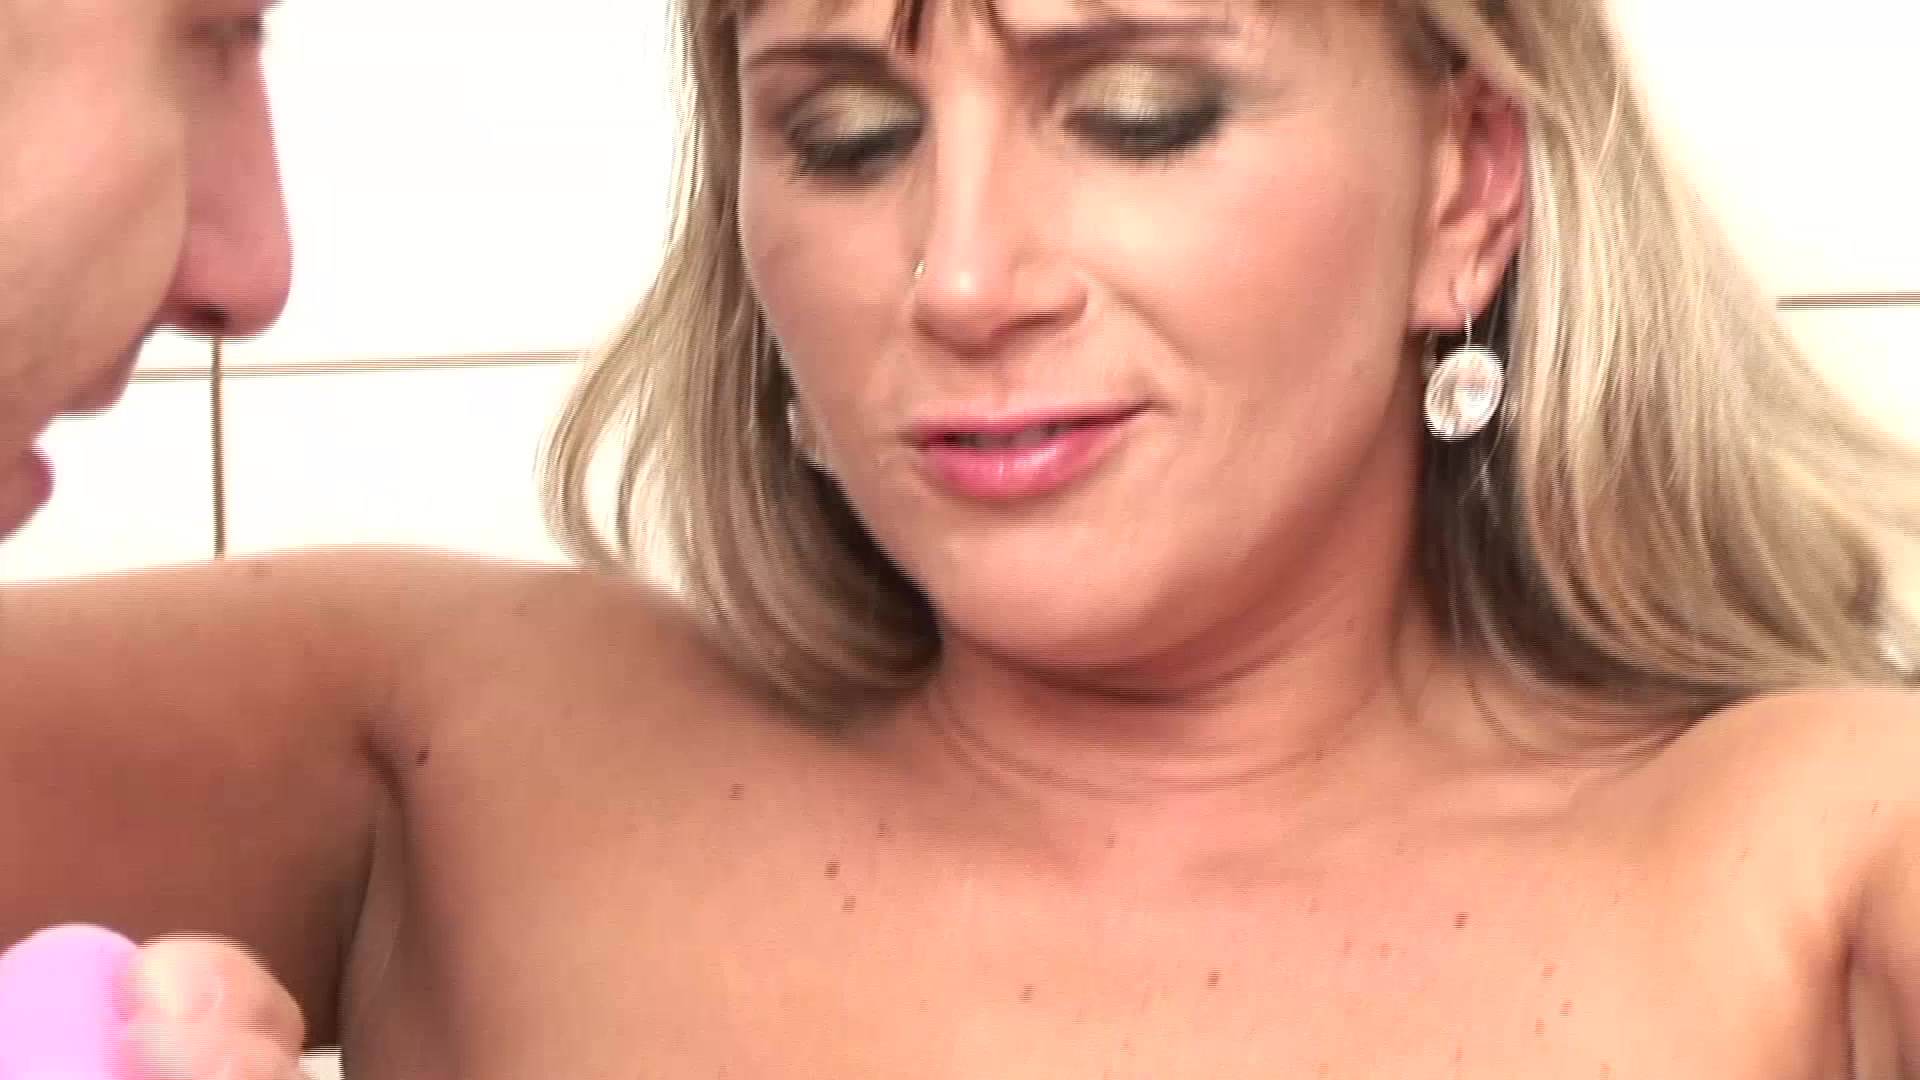 Explosive Dildo And Fisting Power Action 14